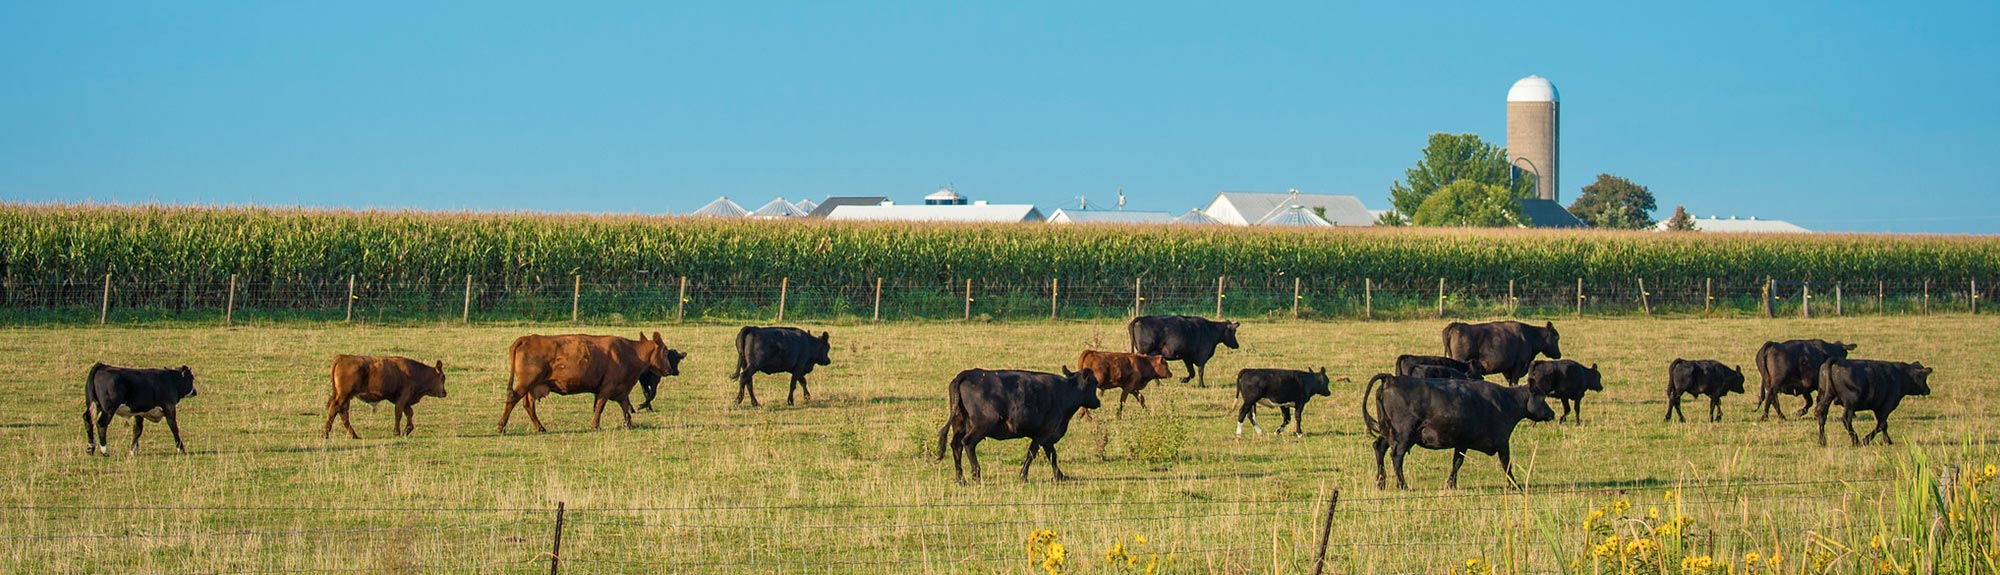 Cattle graze in a field outside of Walcott, Iowa.